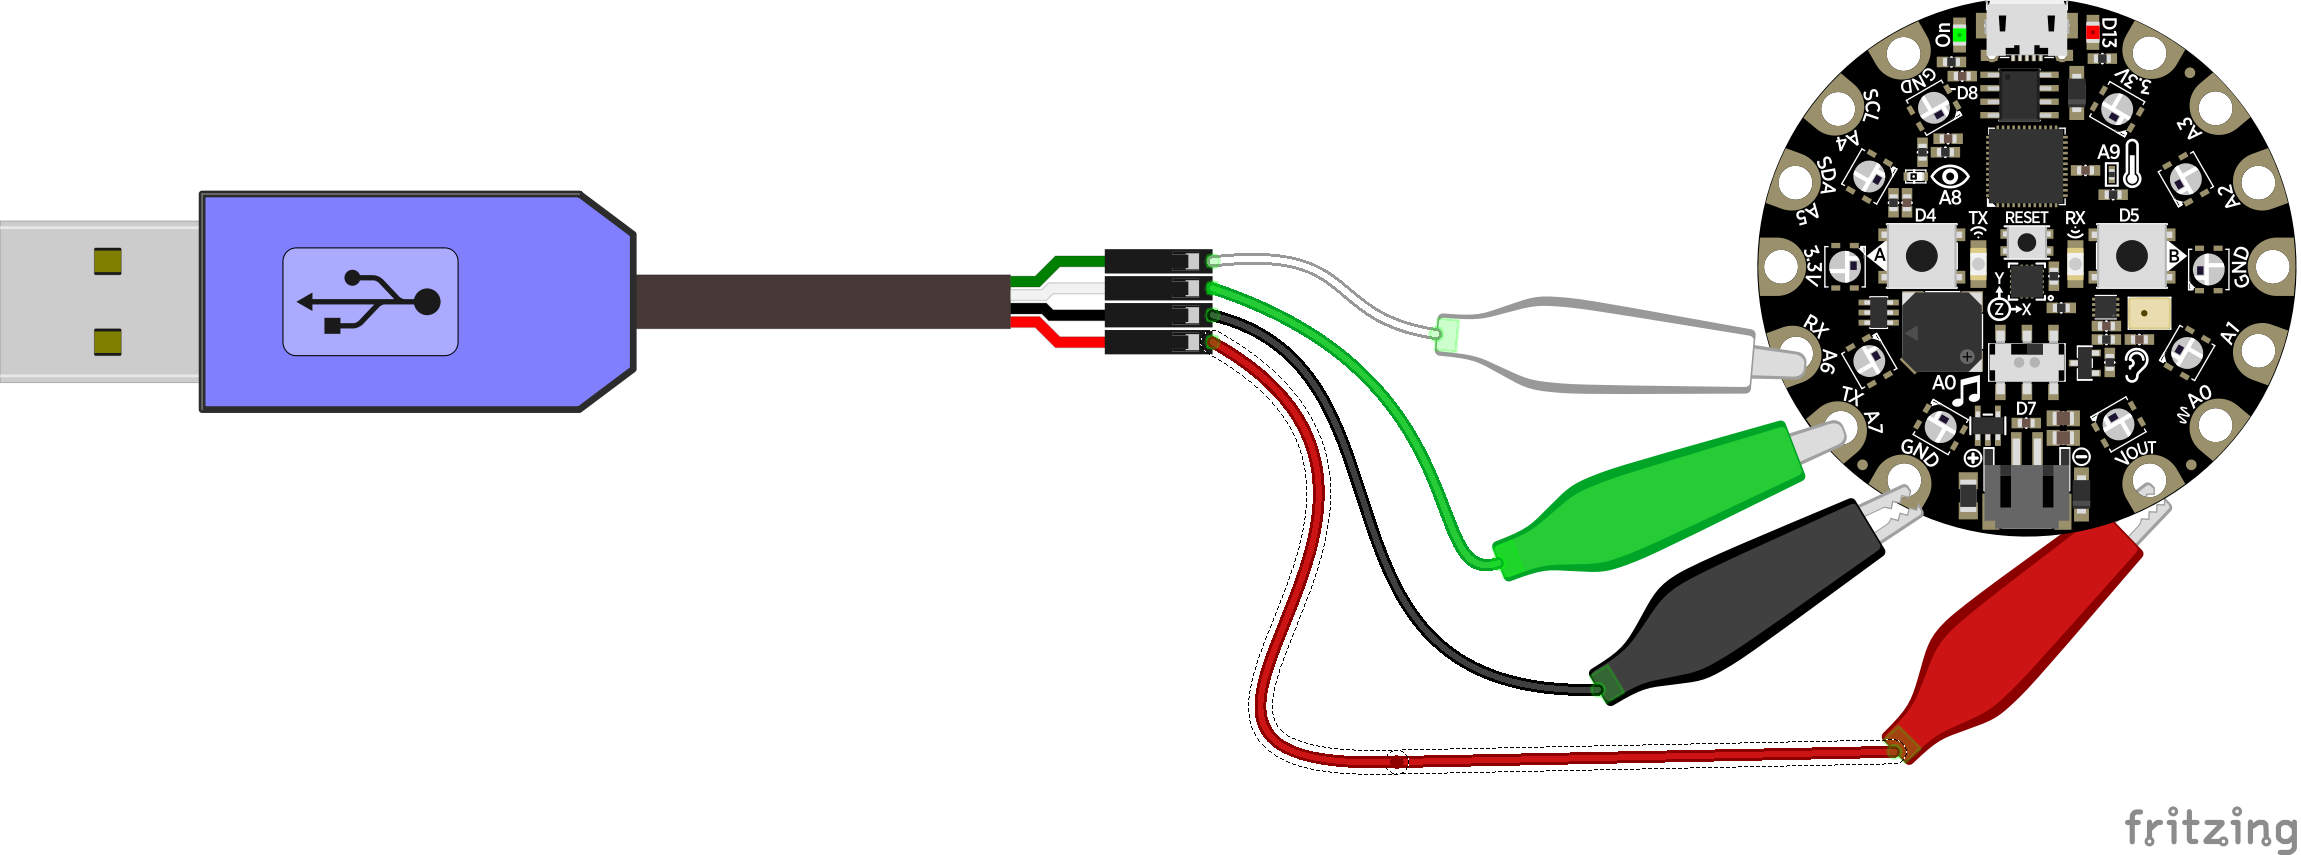 makecode_Serial-to-cable-w-pwr.png